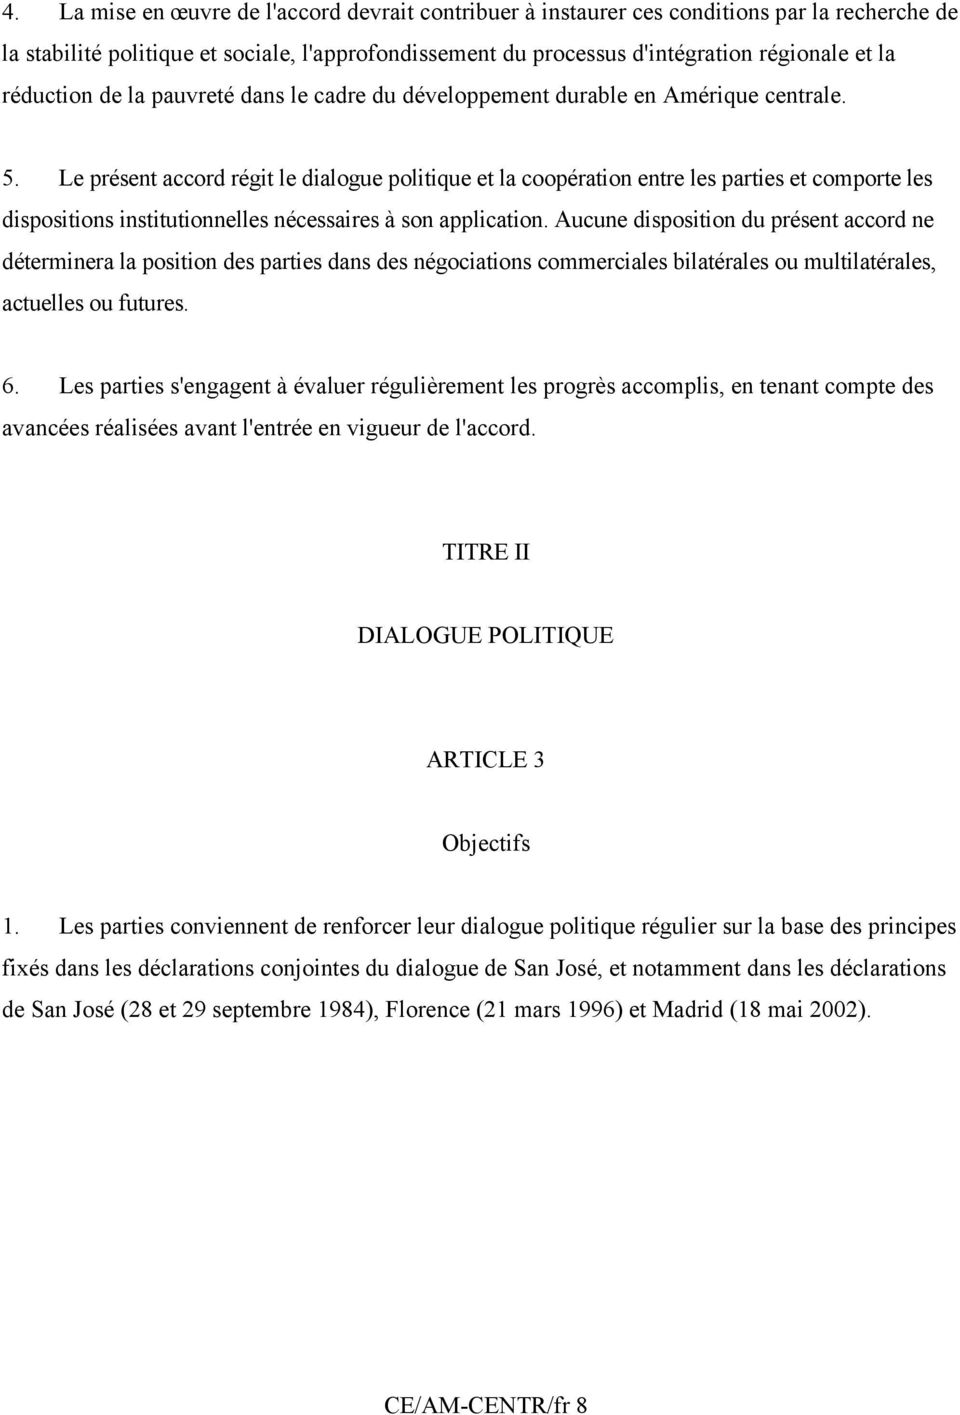 Le présent accord régit le dialogue politique et la coopération entre les parties et comporte les dispositions institutionnelles nécessaires à son application.